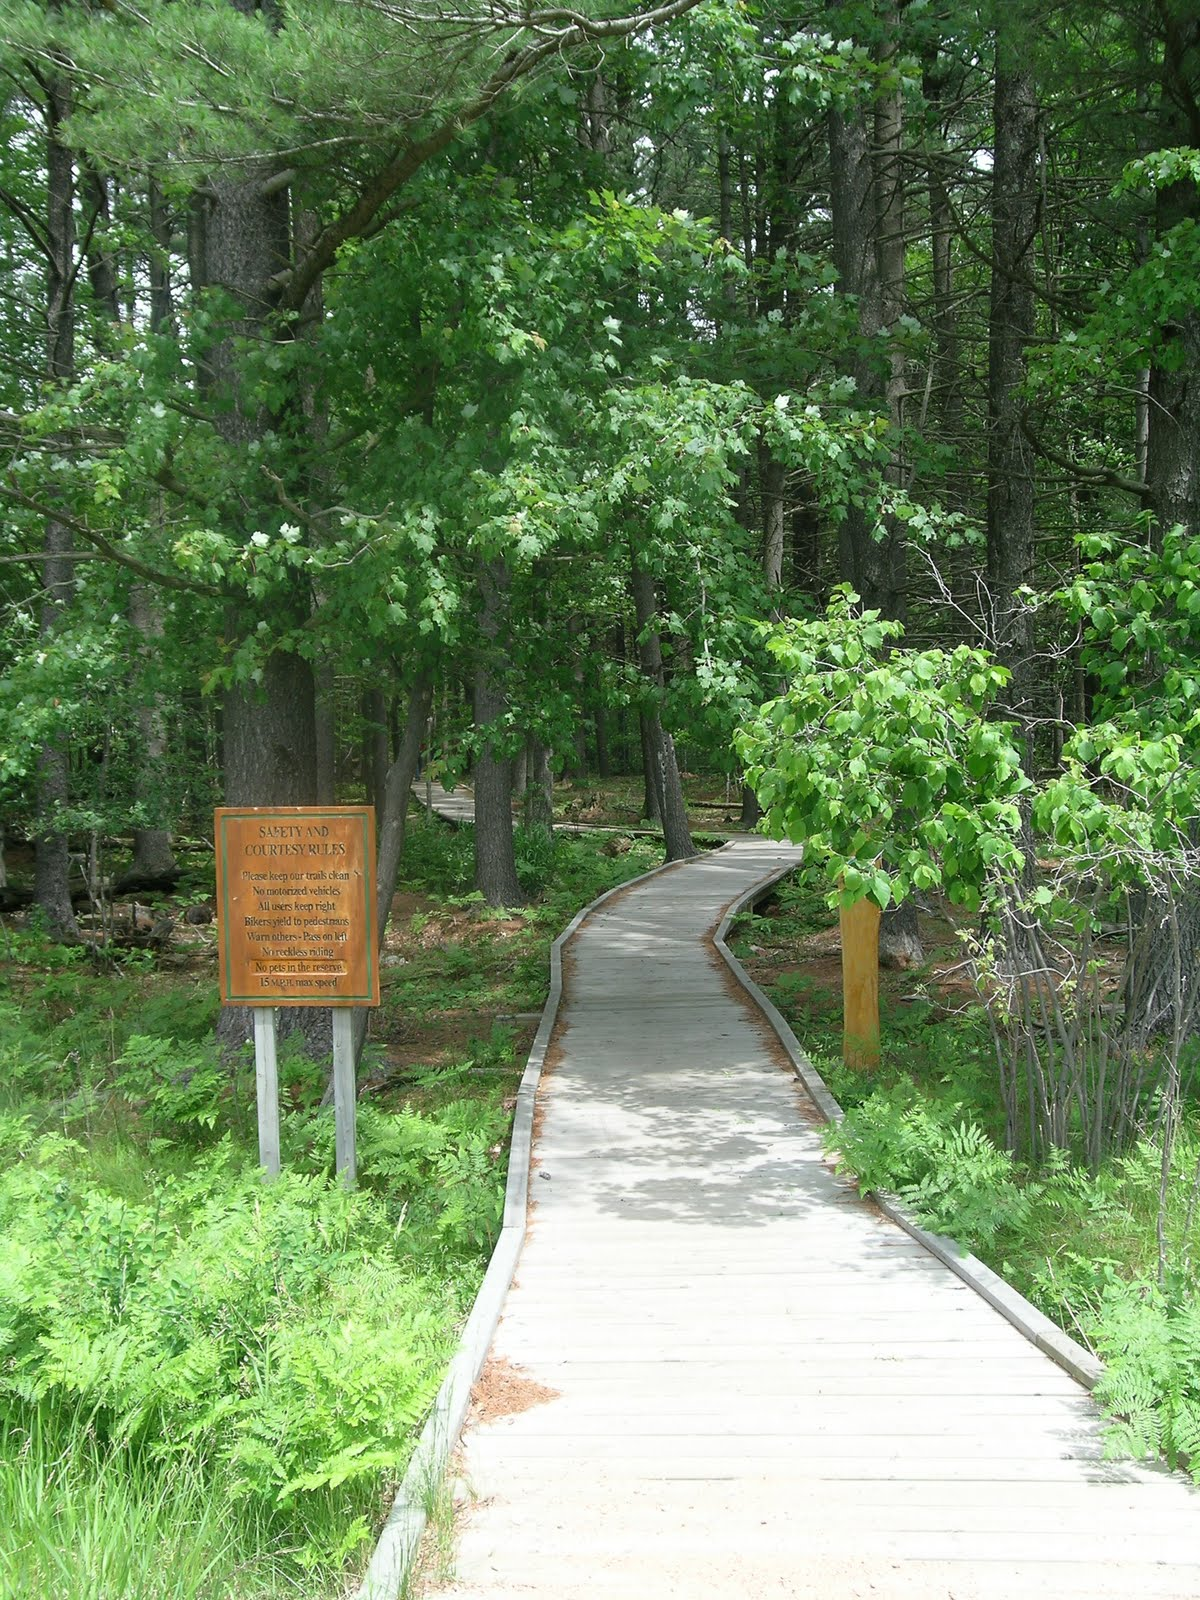 University Trail, west entrance to Schmeeckle Reserve